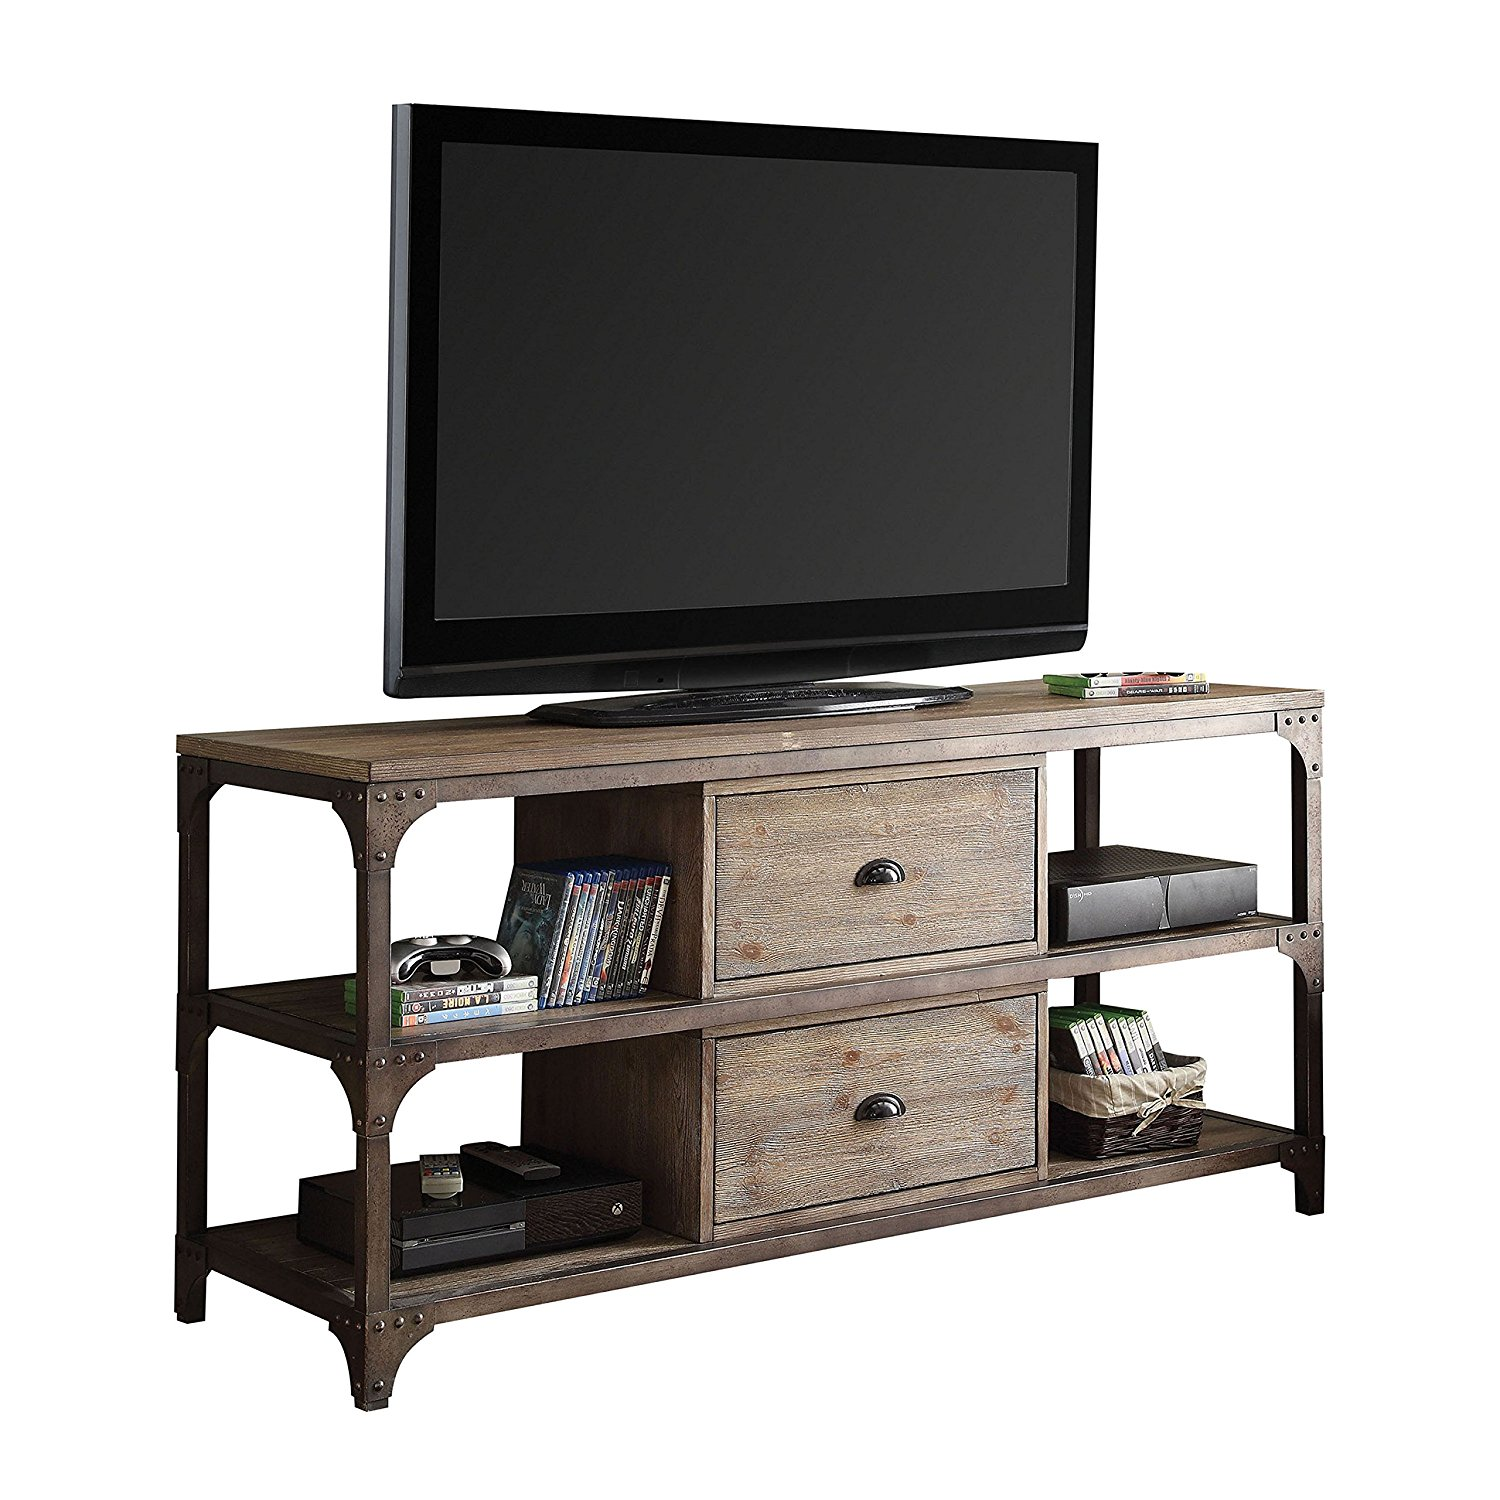 Tv Stand, Weathered Oak & Antique Silver - Pine Veneer, Mdf, Iron Fr Weathered Oak & Antique Silver